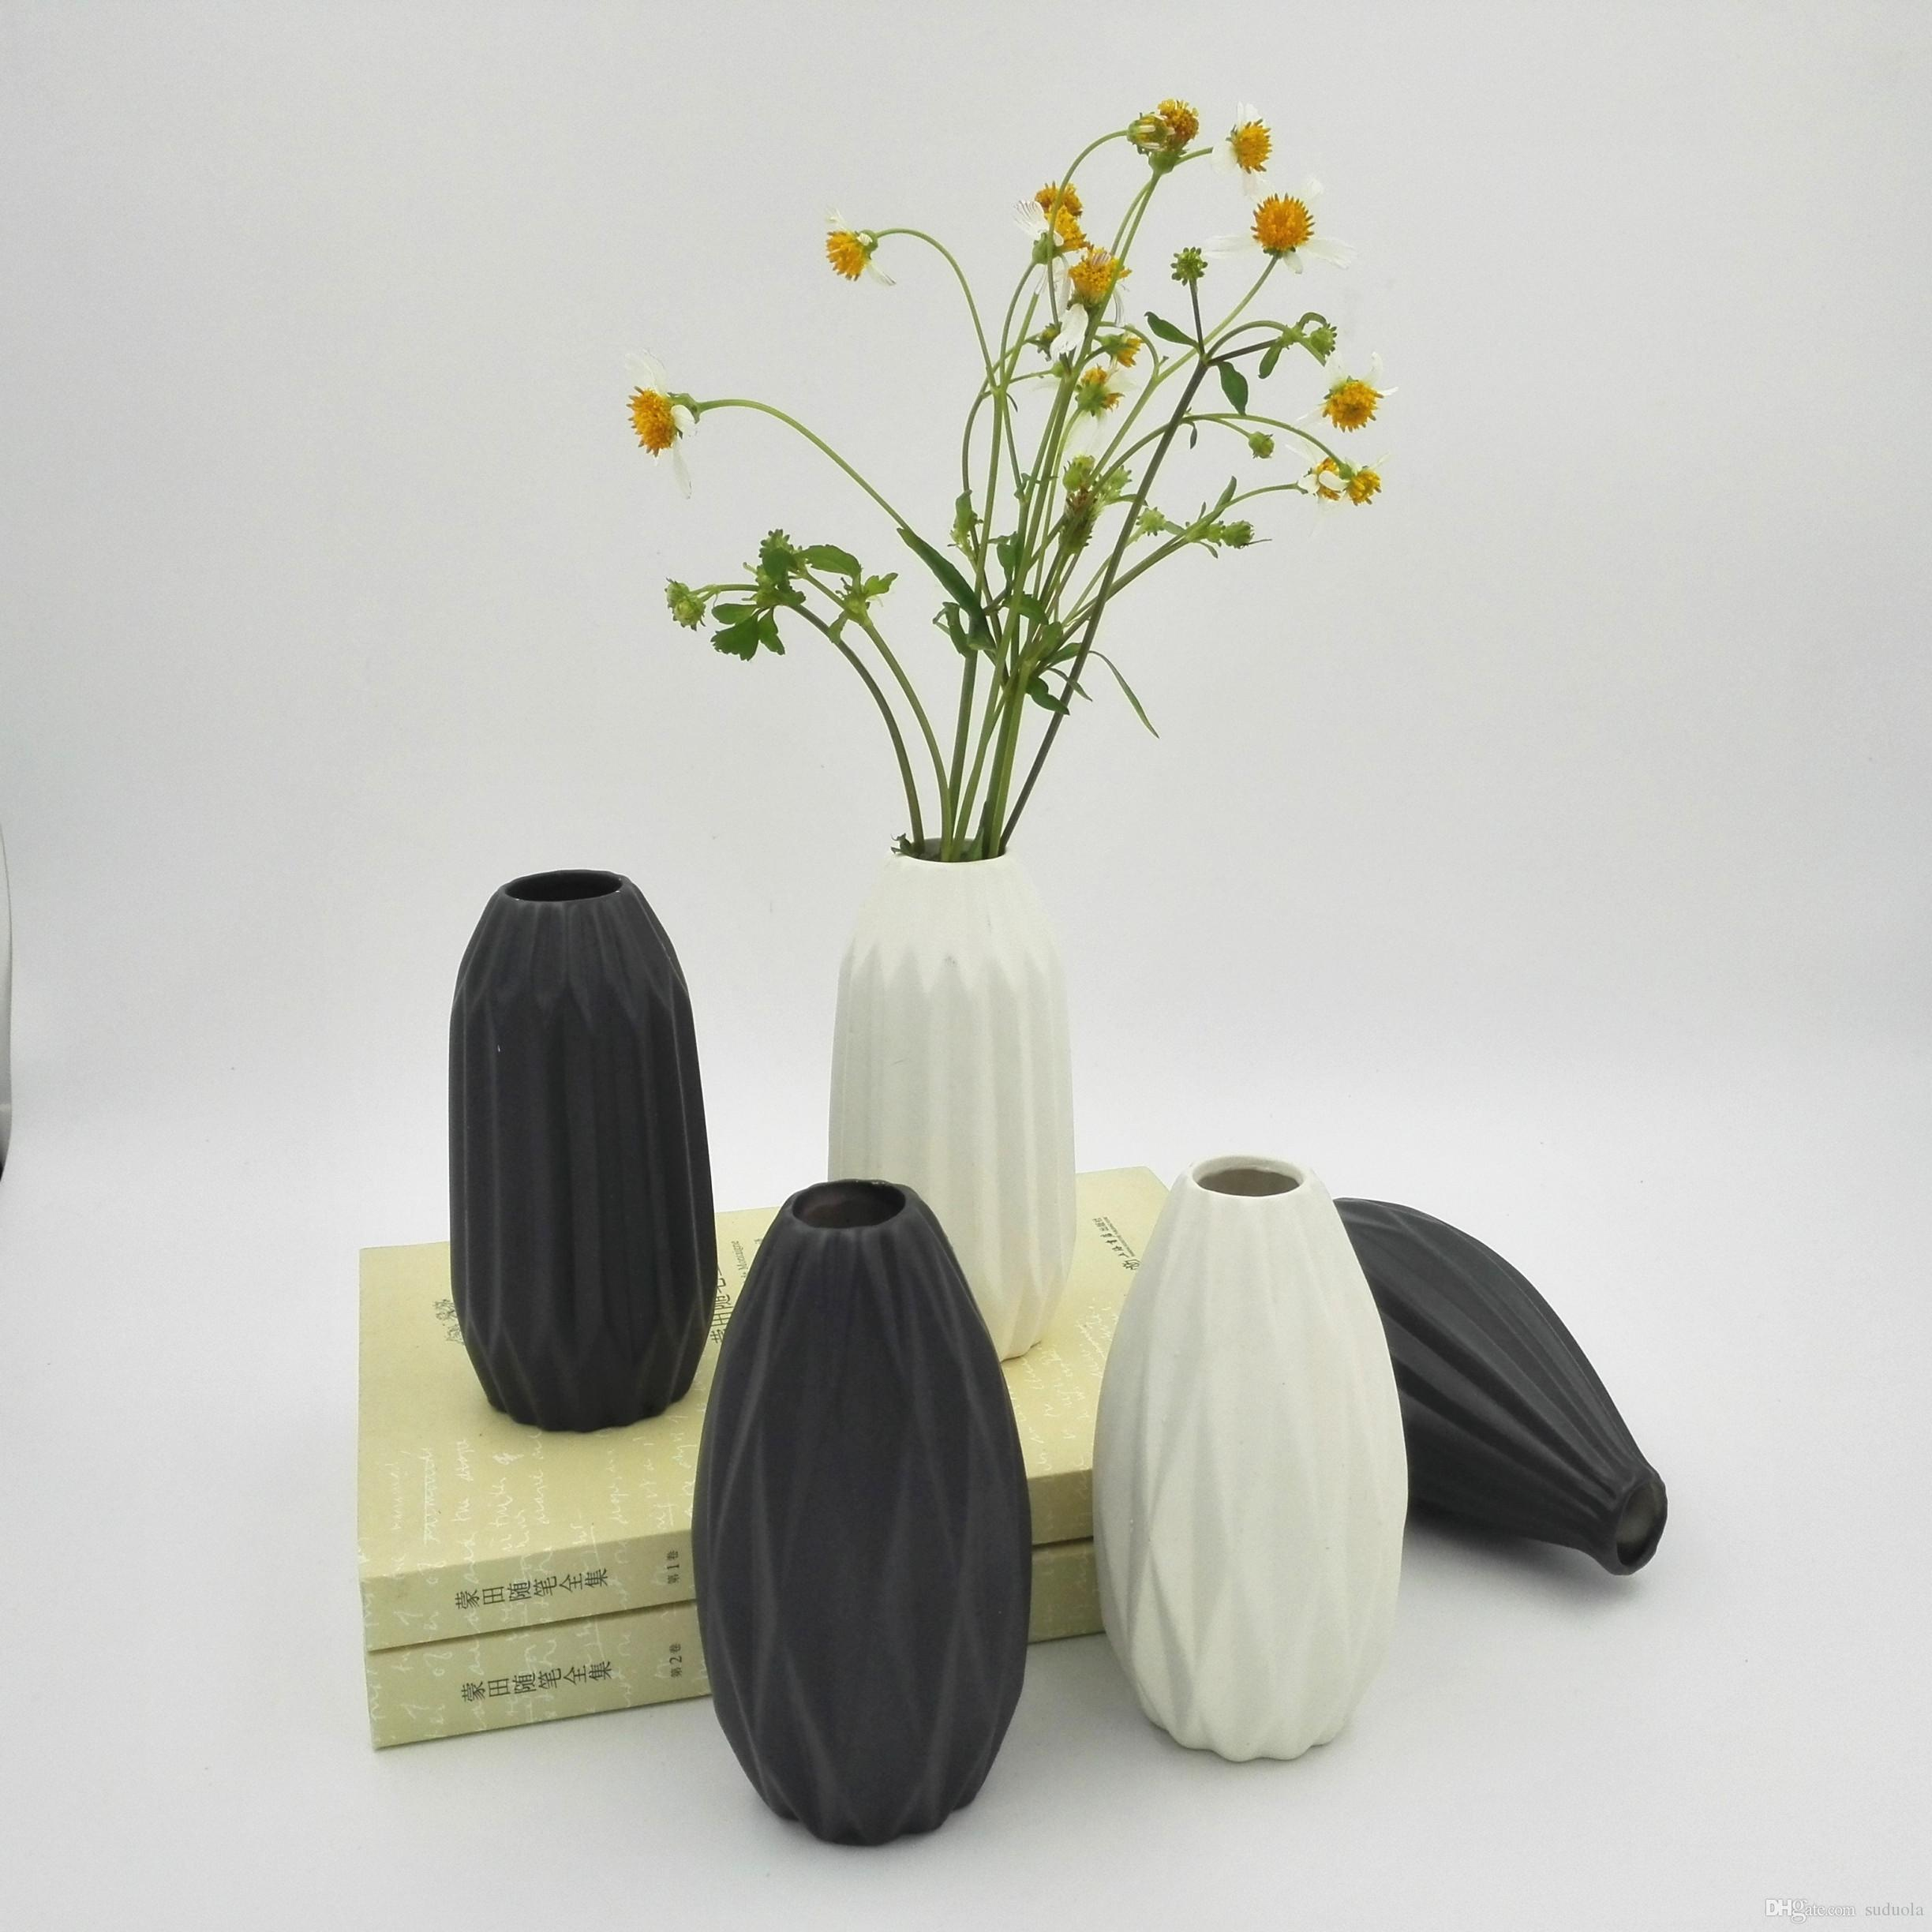 Home garden ceramic pottery planter flower pot green plant office home garden ceramic pottery planter flower pot green plant office mini black white vase mightylinksfo